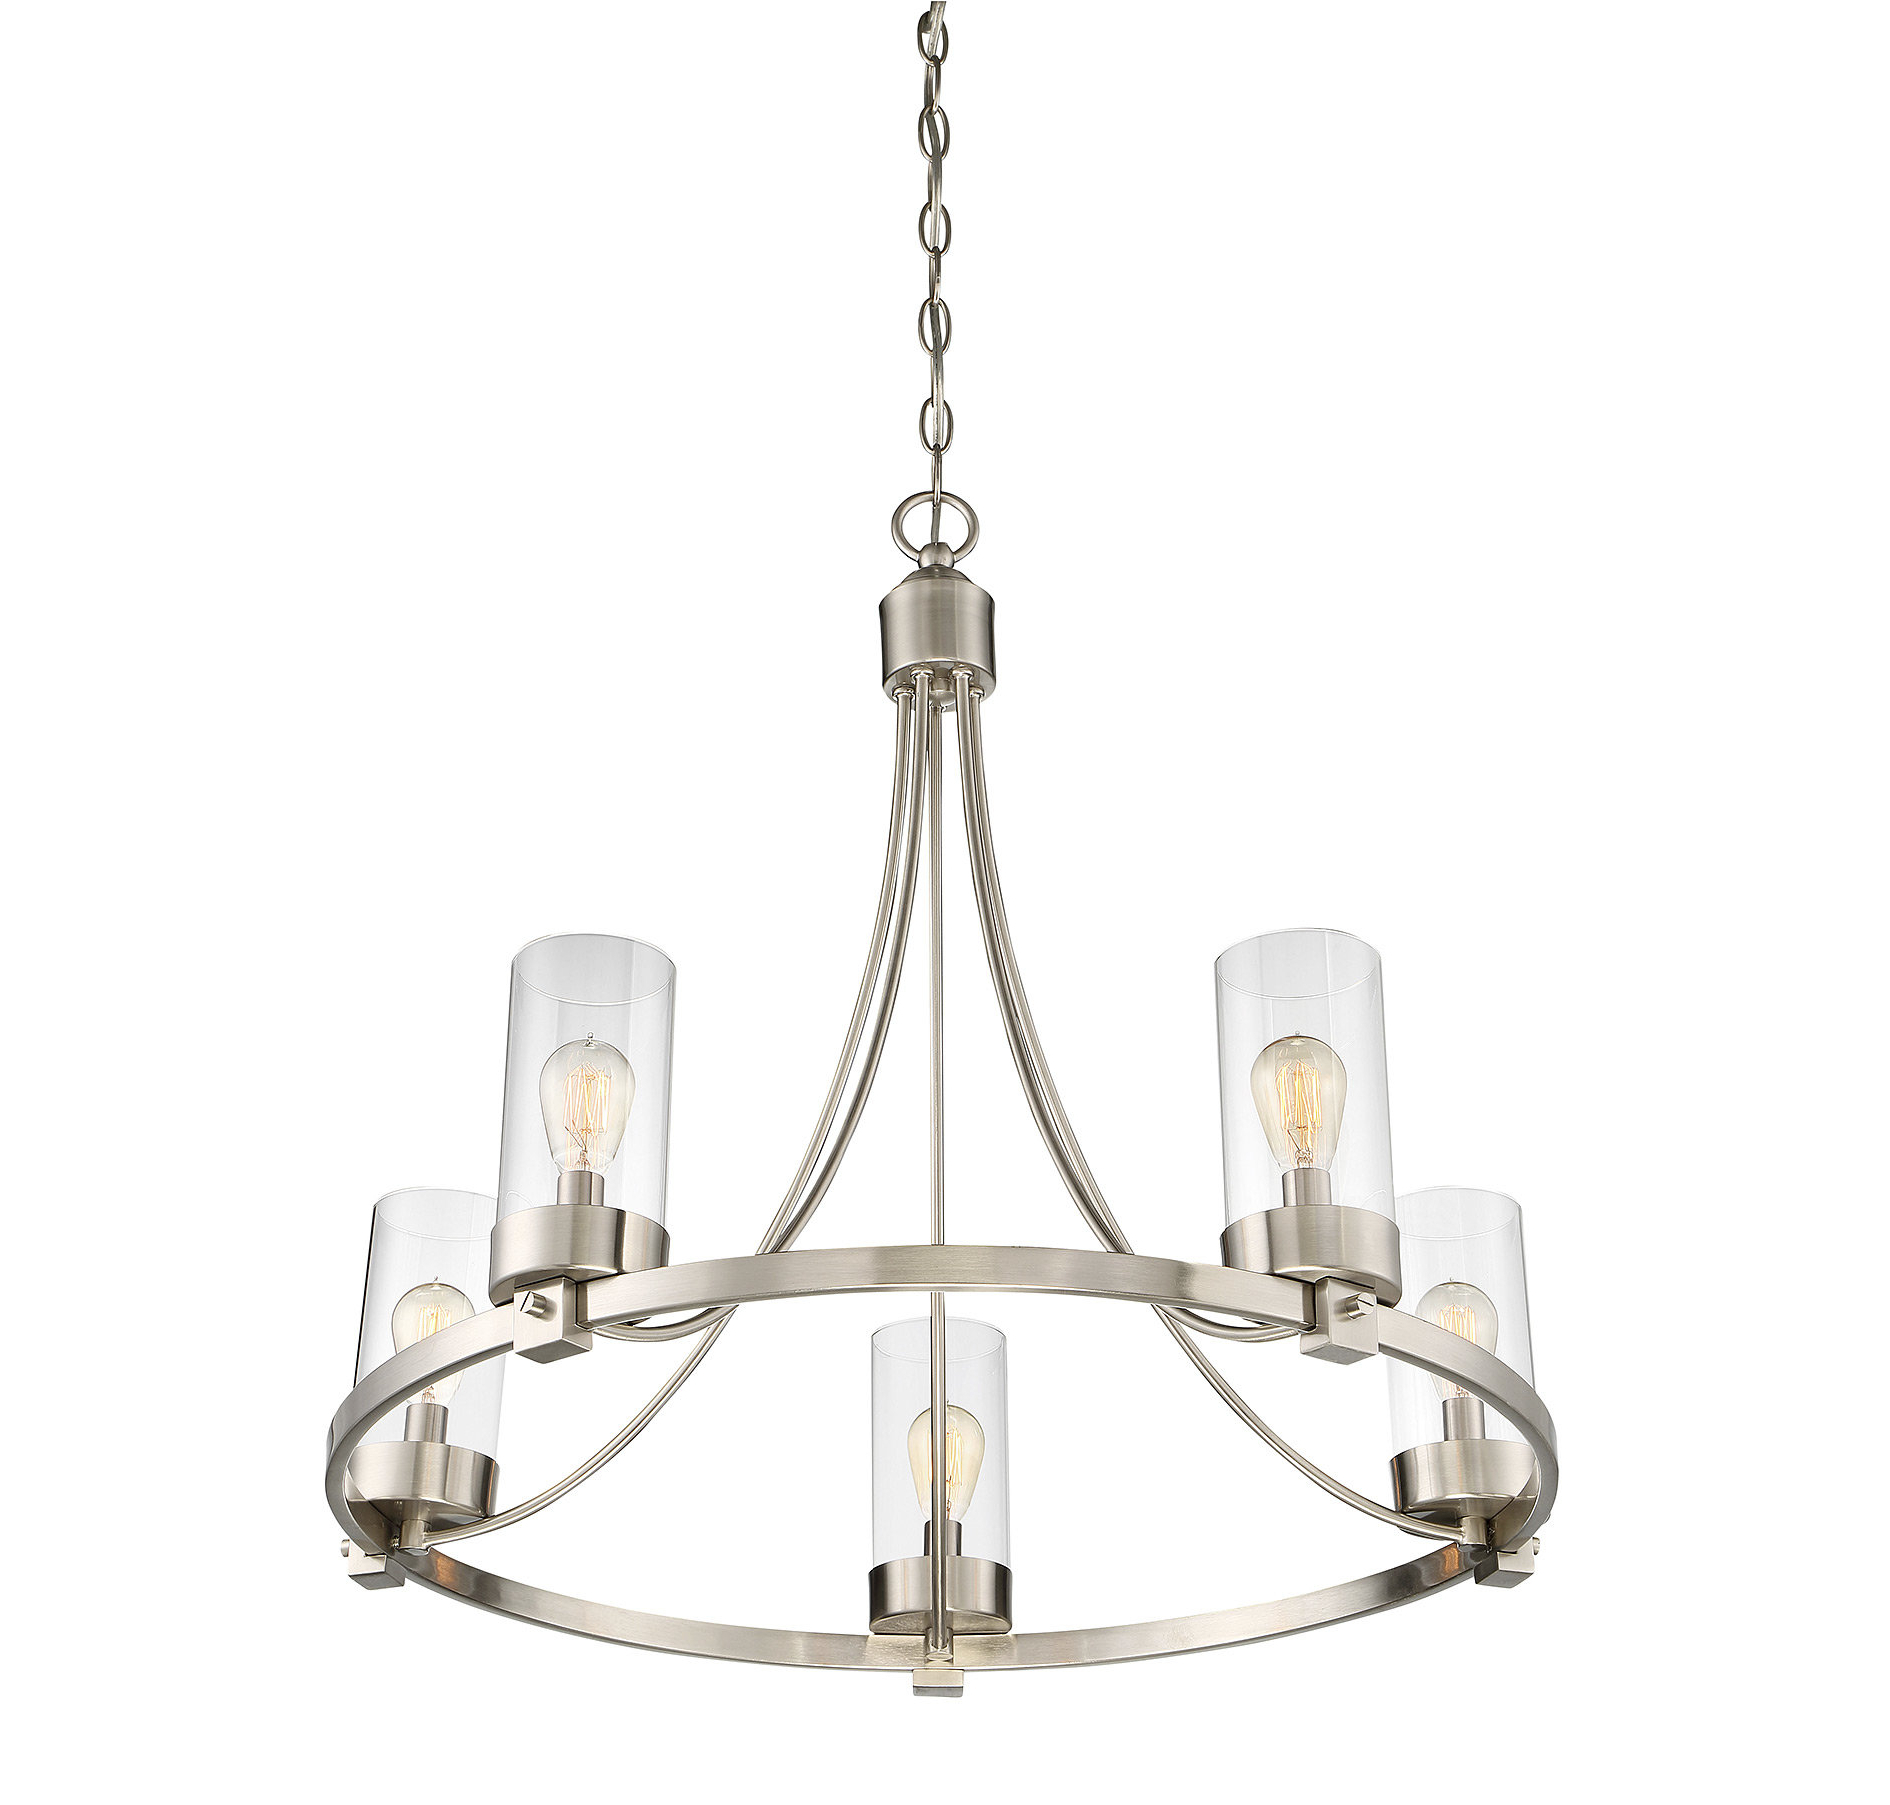 Most Popular Janette 5 Light Wagon Wheel Chandelier Regarding Janette 5 Light Wagon Wheel Chandeliers (View 7 of 25)